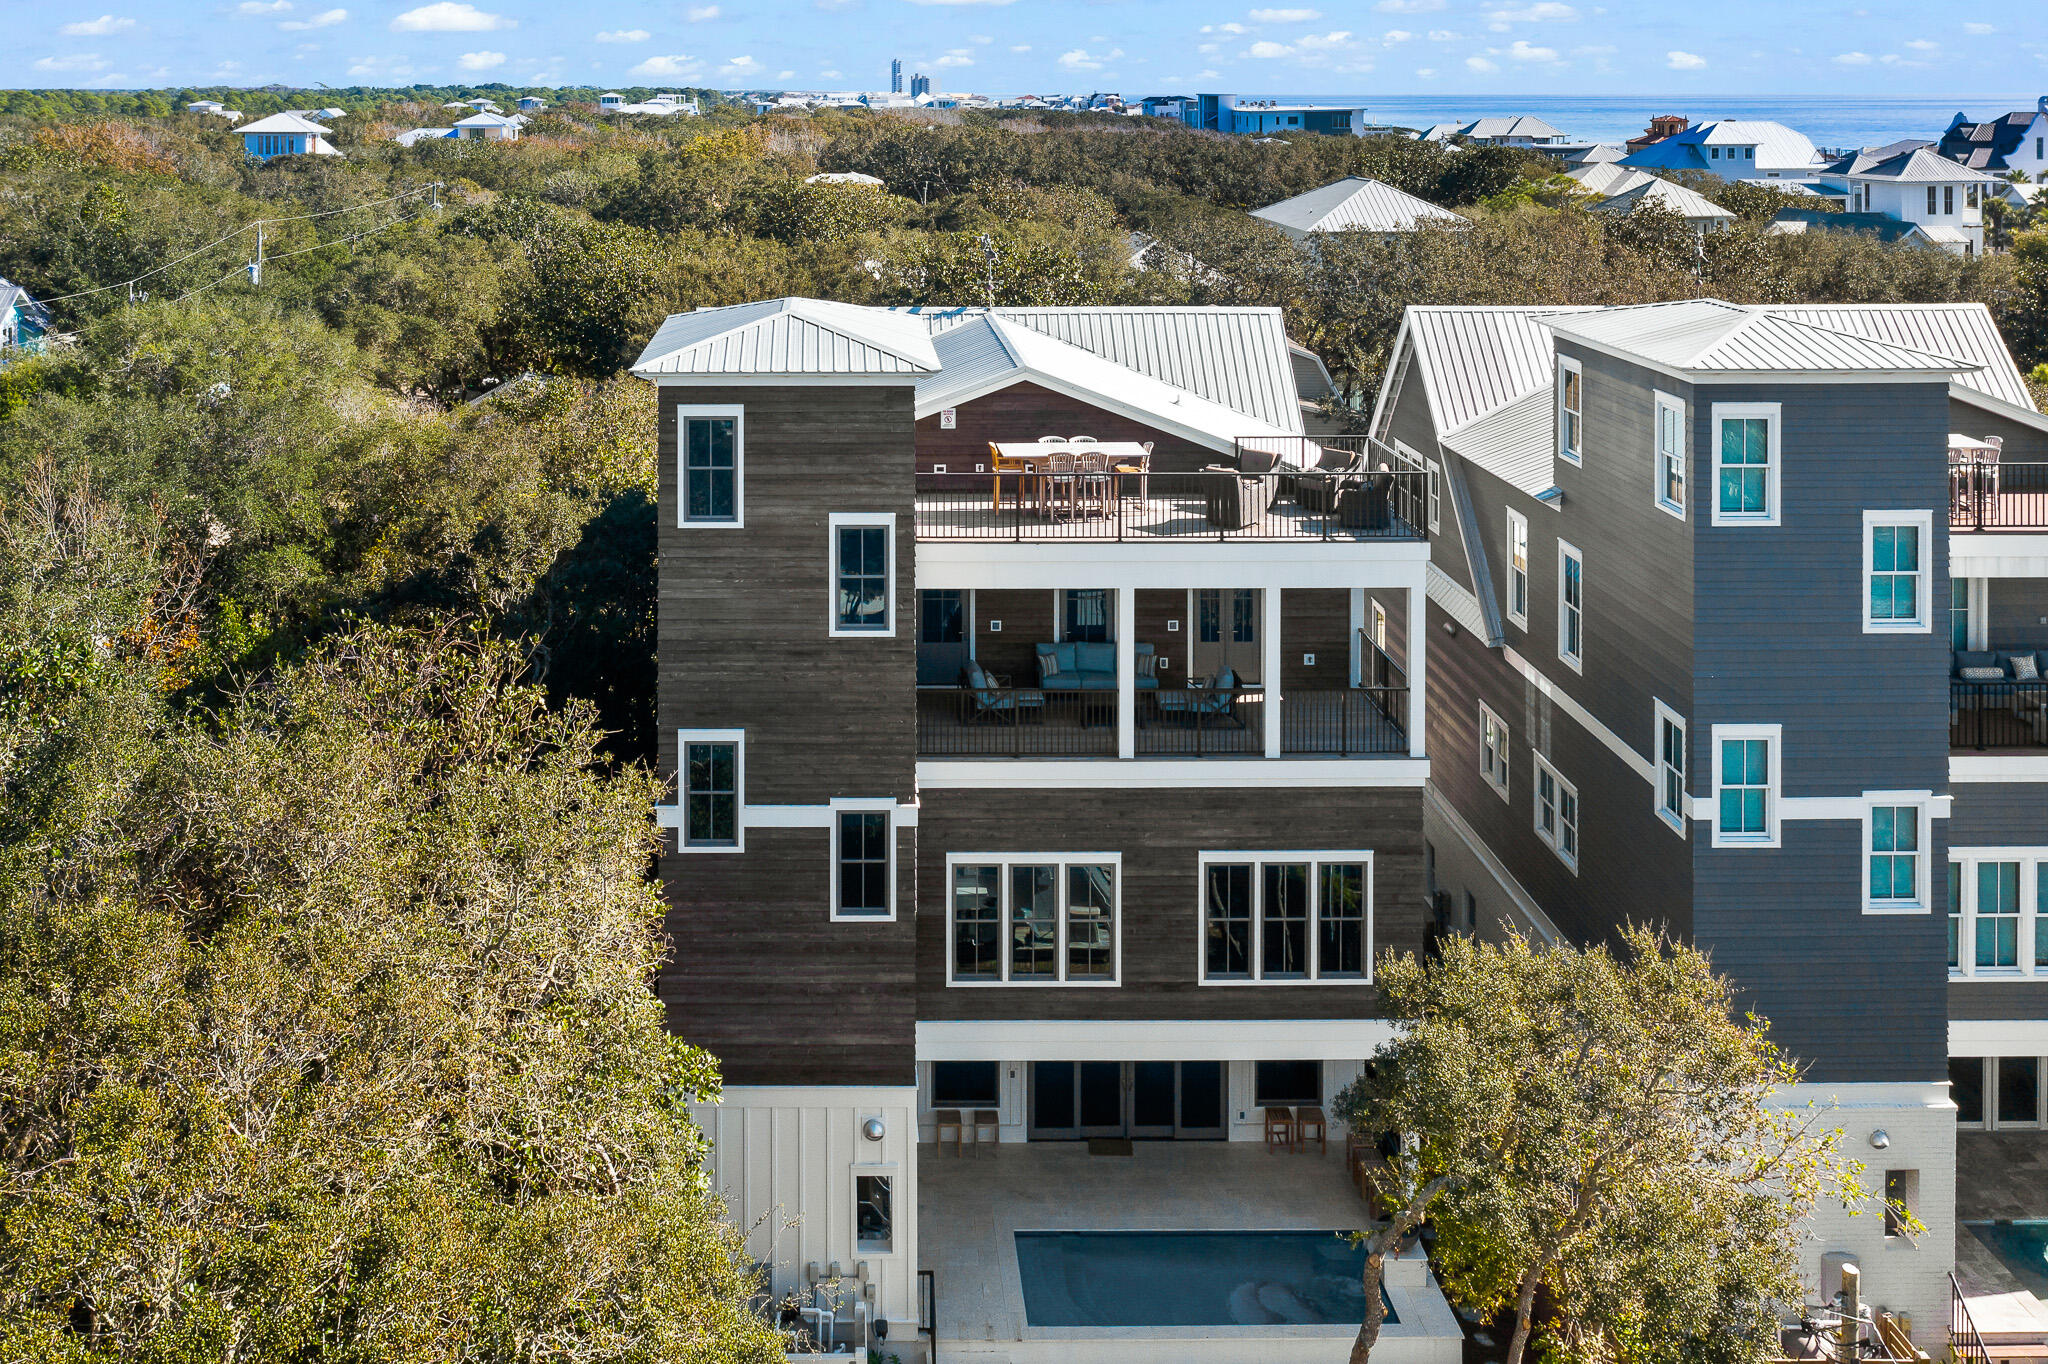 Primely located in the heart of Seagrove Beach, this finely appointed newly-built 30A retreat exempl